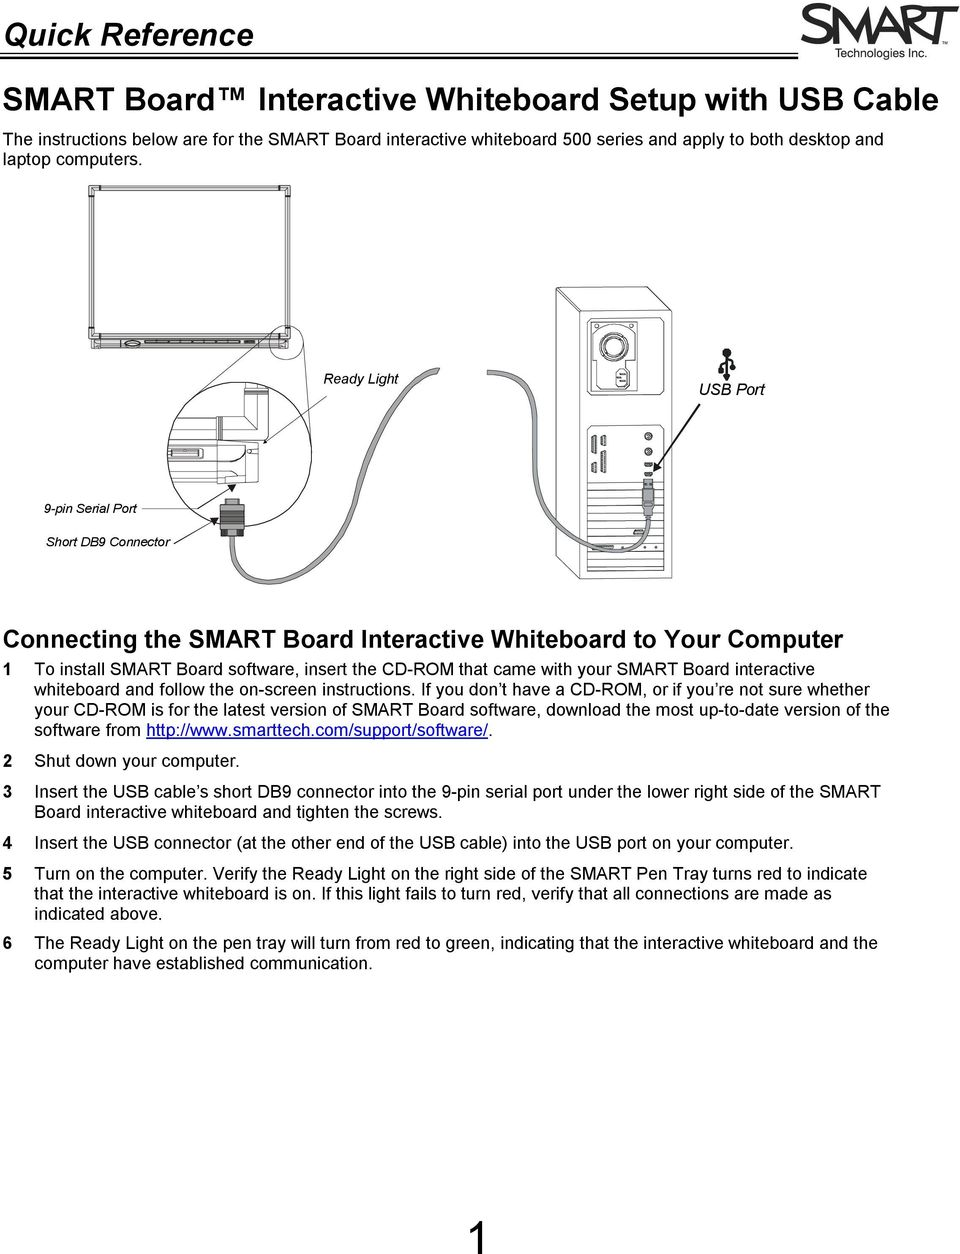 SMART Board interactive whiteboard and follow the on-screen instructions.